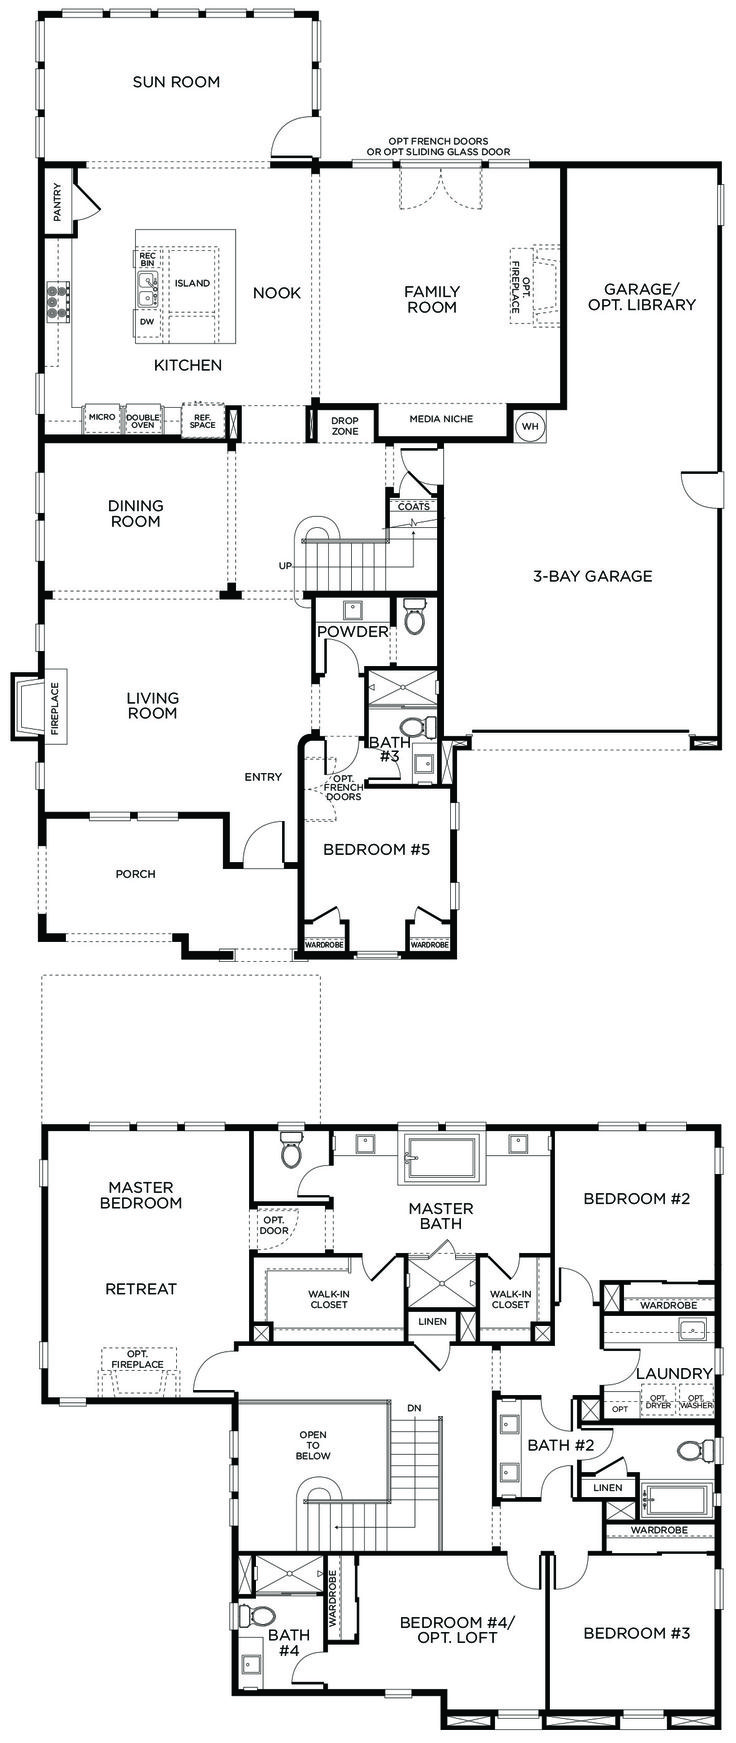 138 best house plans images on pinterest house template floor watermark plan 1a ccuart Choice Image